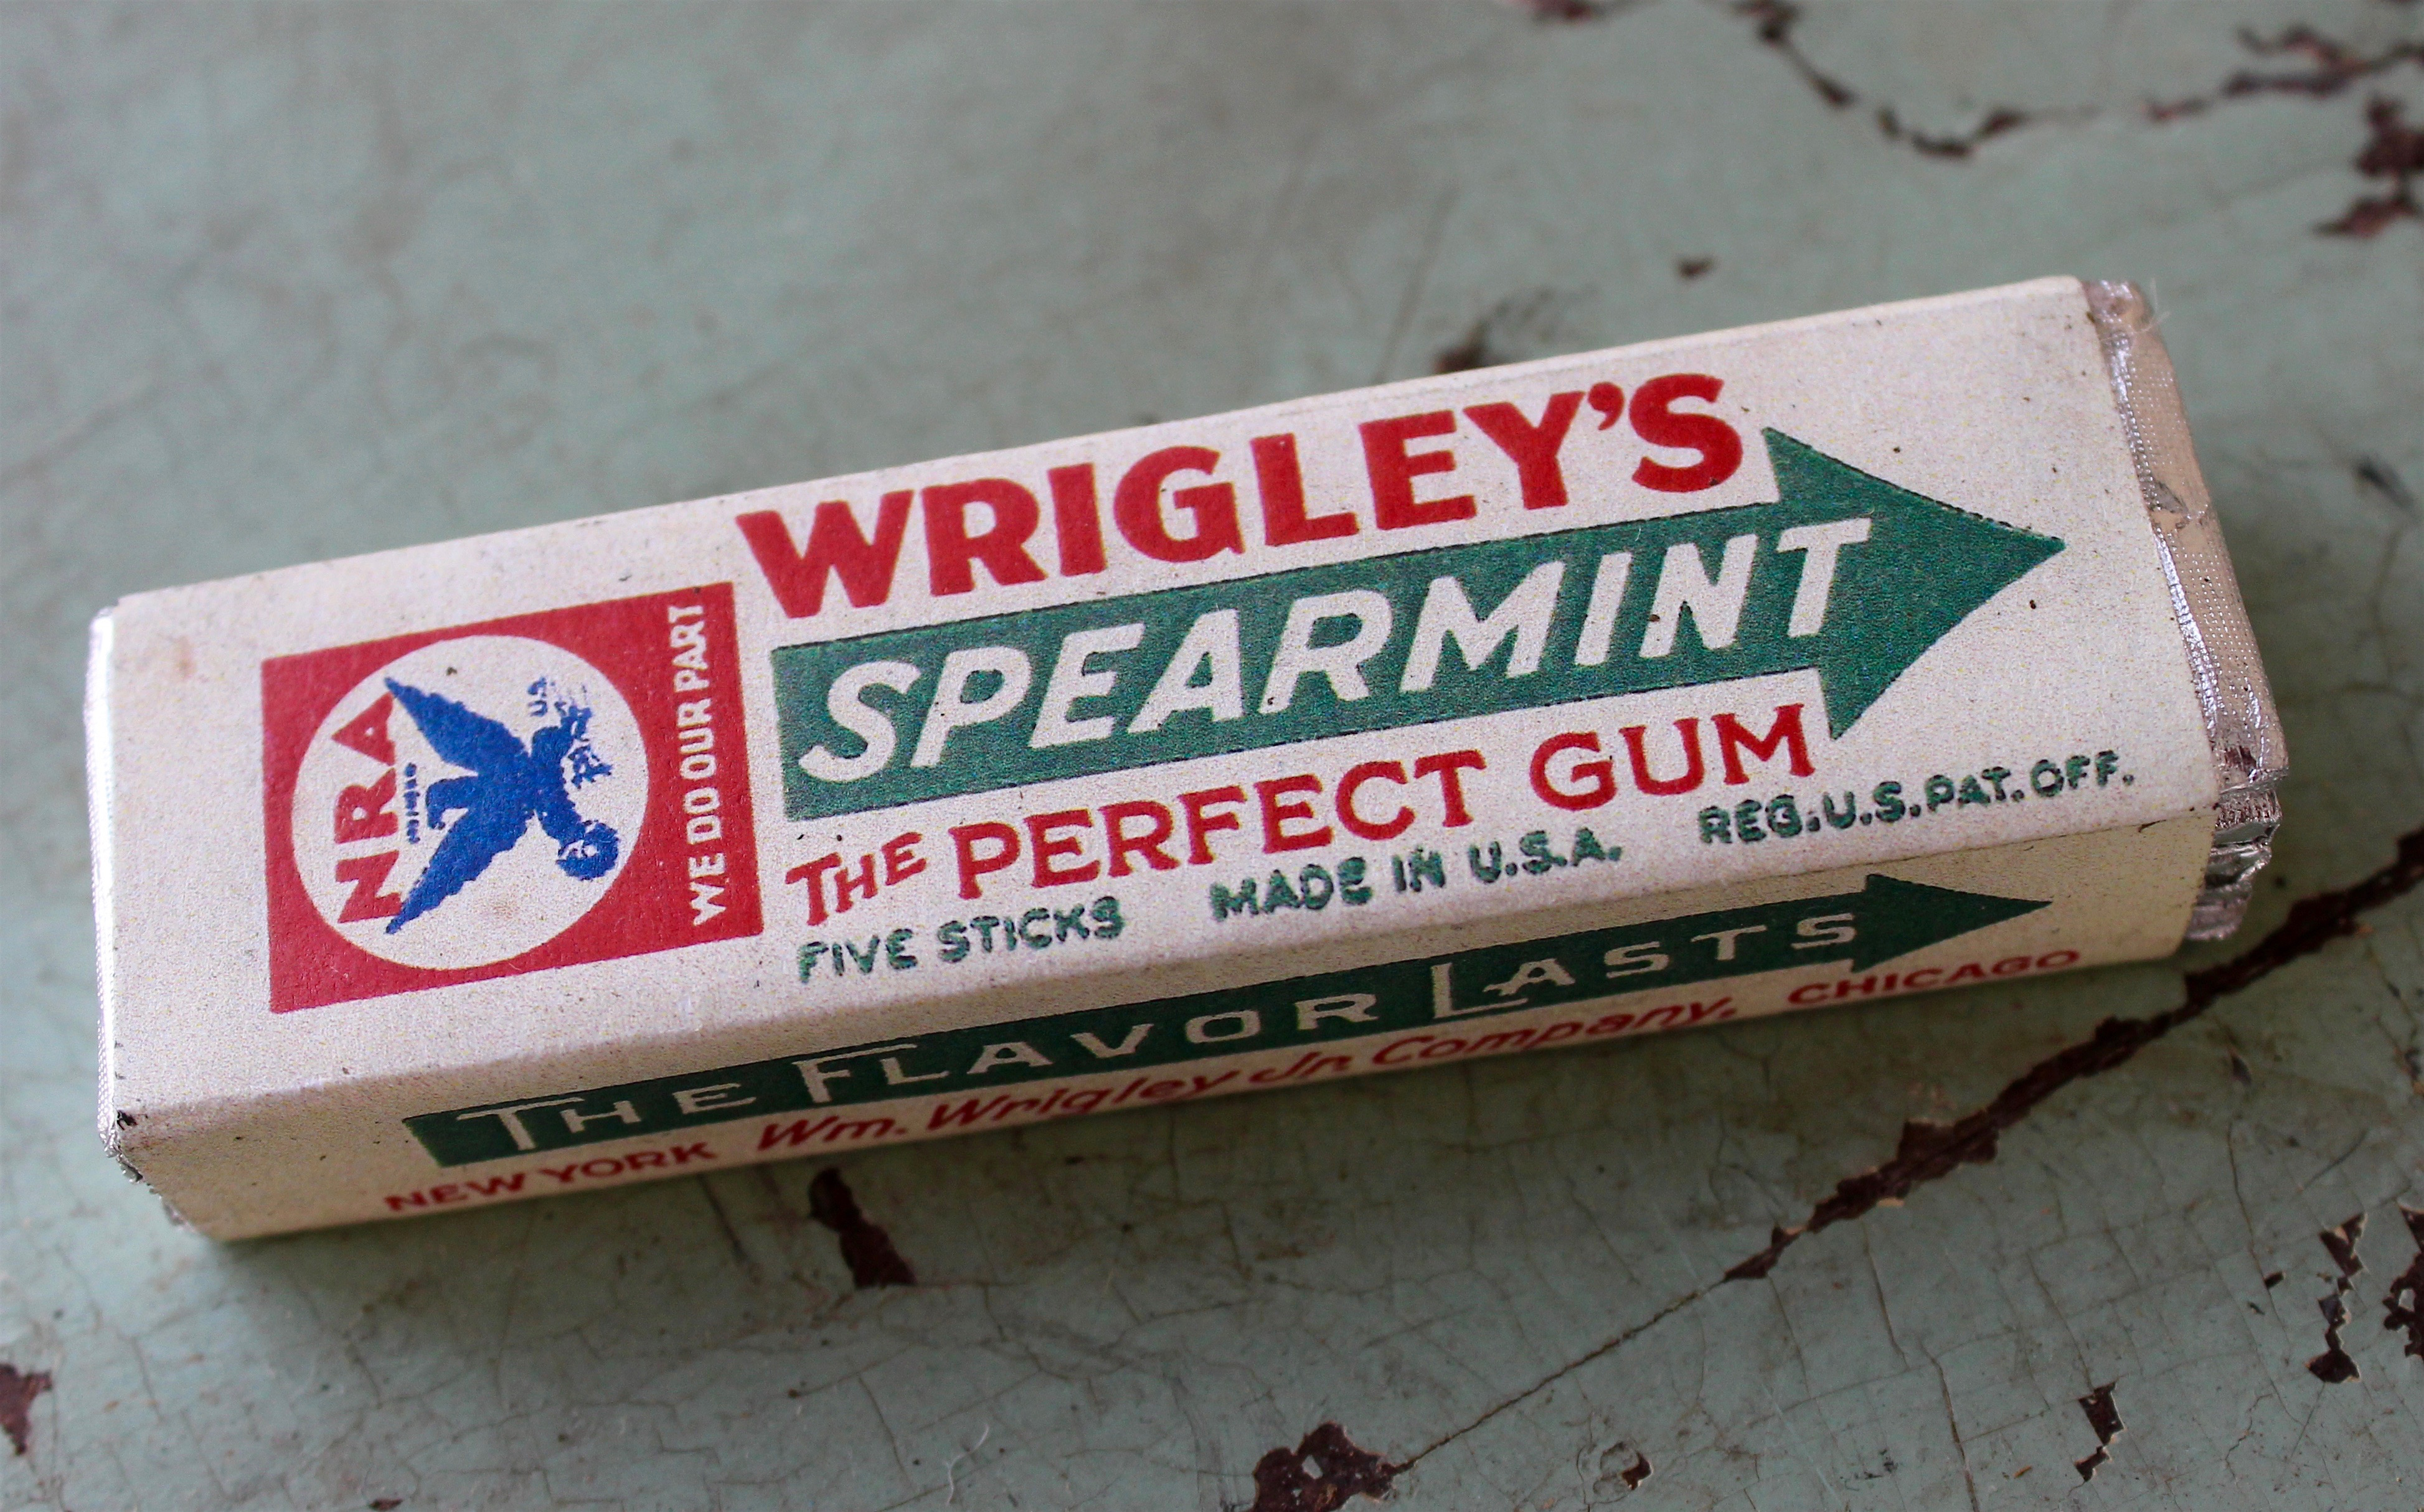 Wrigley spearmint gum pack by wm wrigley jr company 1932 made wrigley spearmint gum pack by wm wrigley jr company 1932 made in chicago museum buycottarizona Images